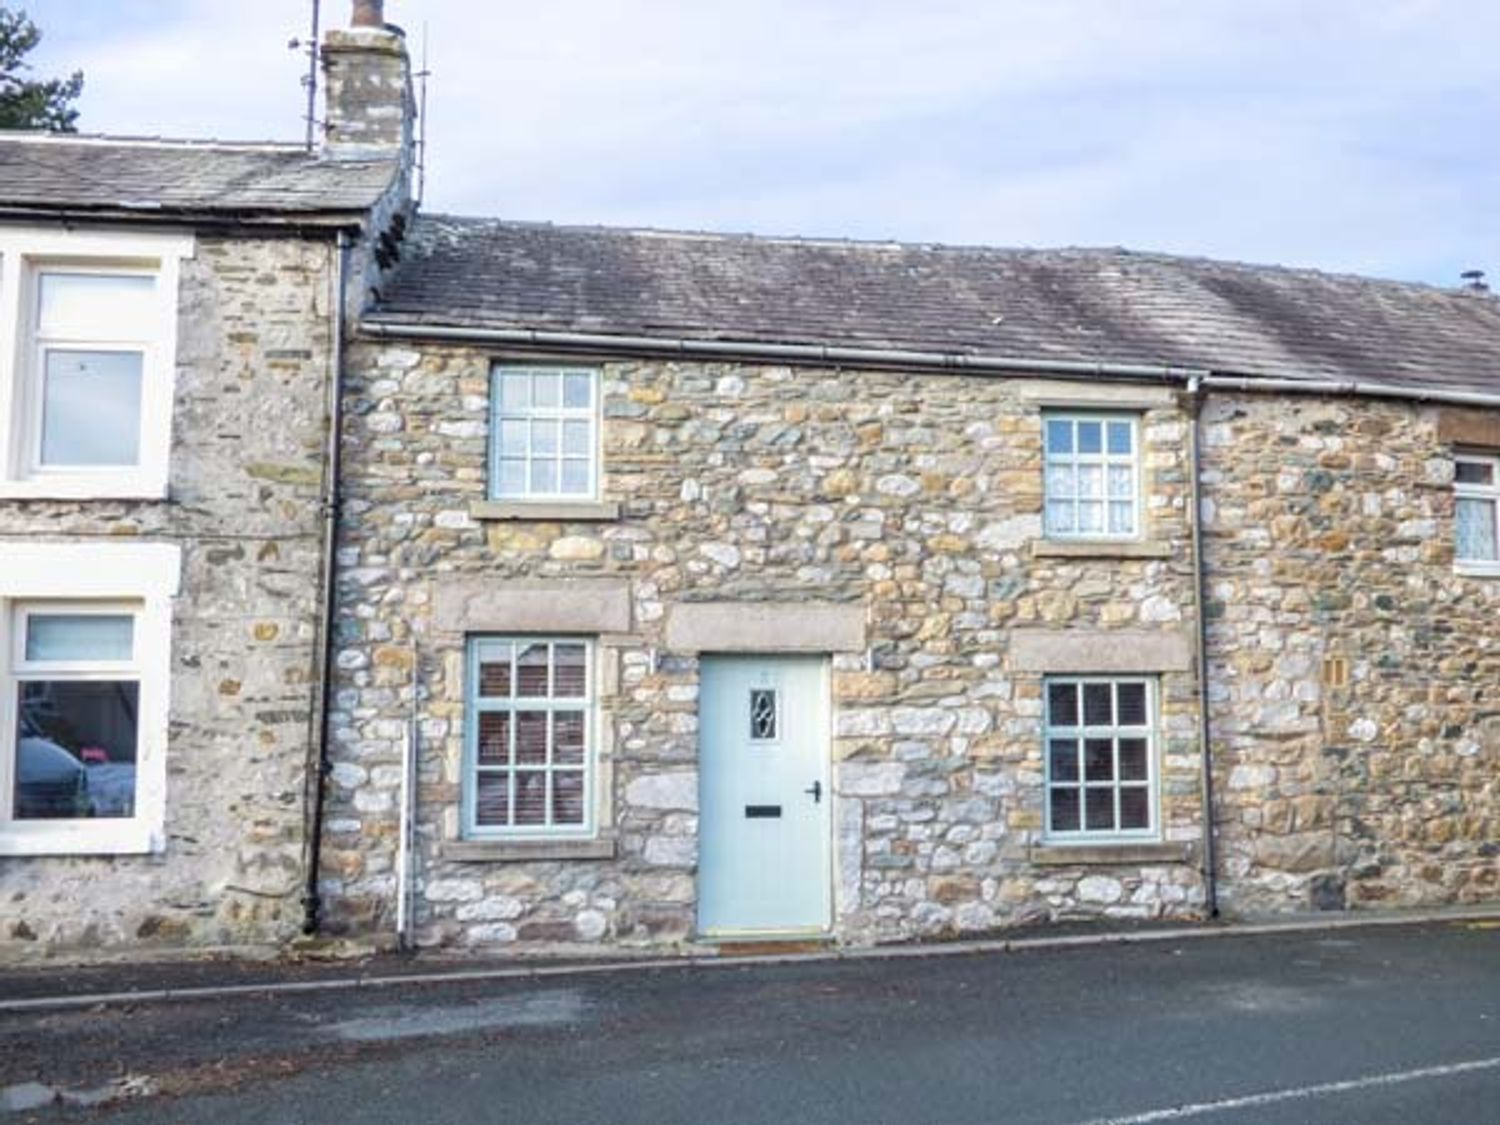 3 Bank End - Yorkshire Dales - 933458 - photo 1